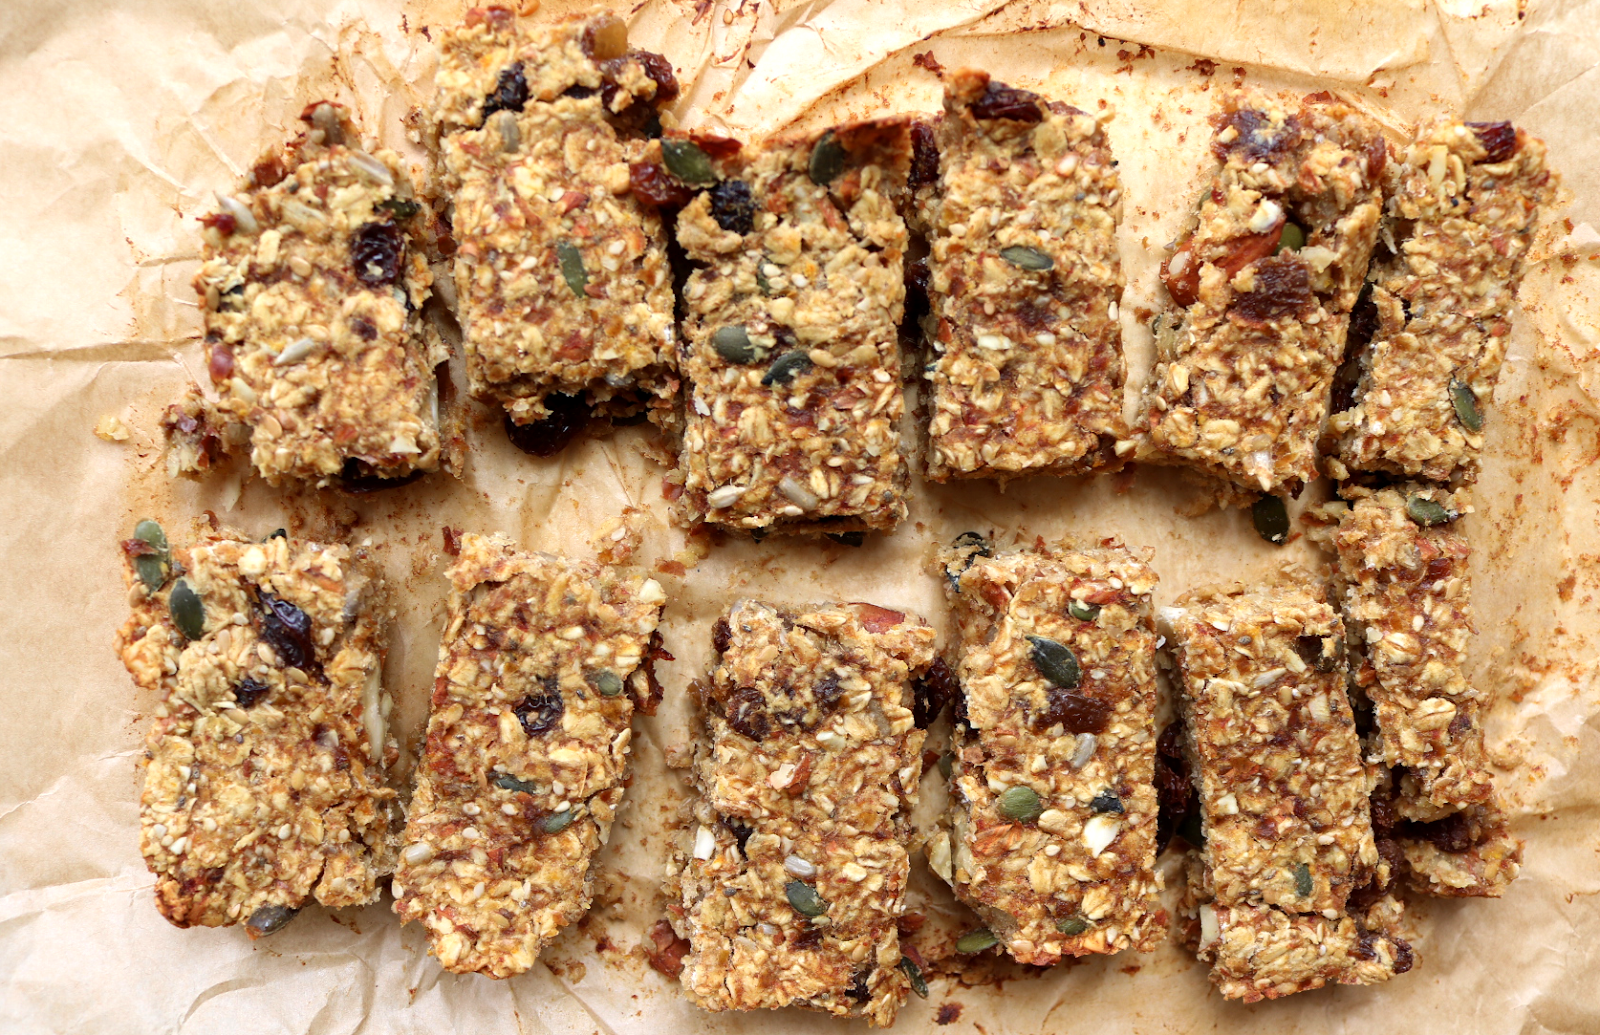 Rustic Fruit & Nut Flapjacks (Dairy-Free / Vegan recipe)